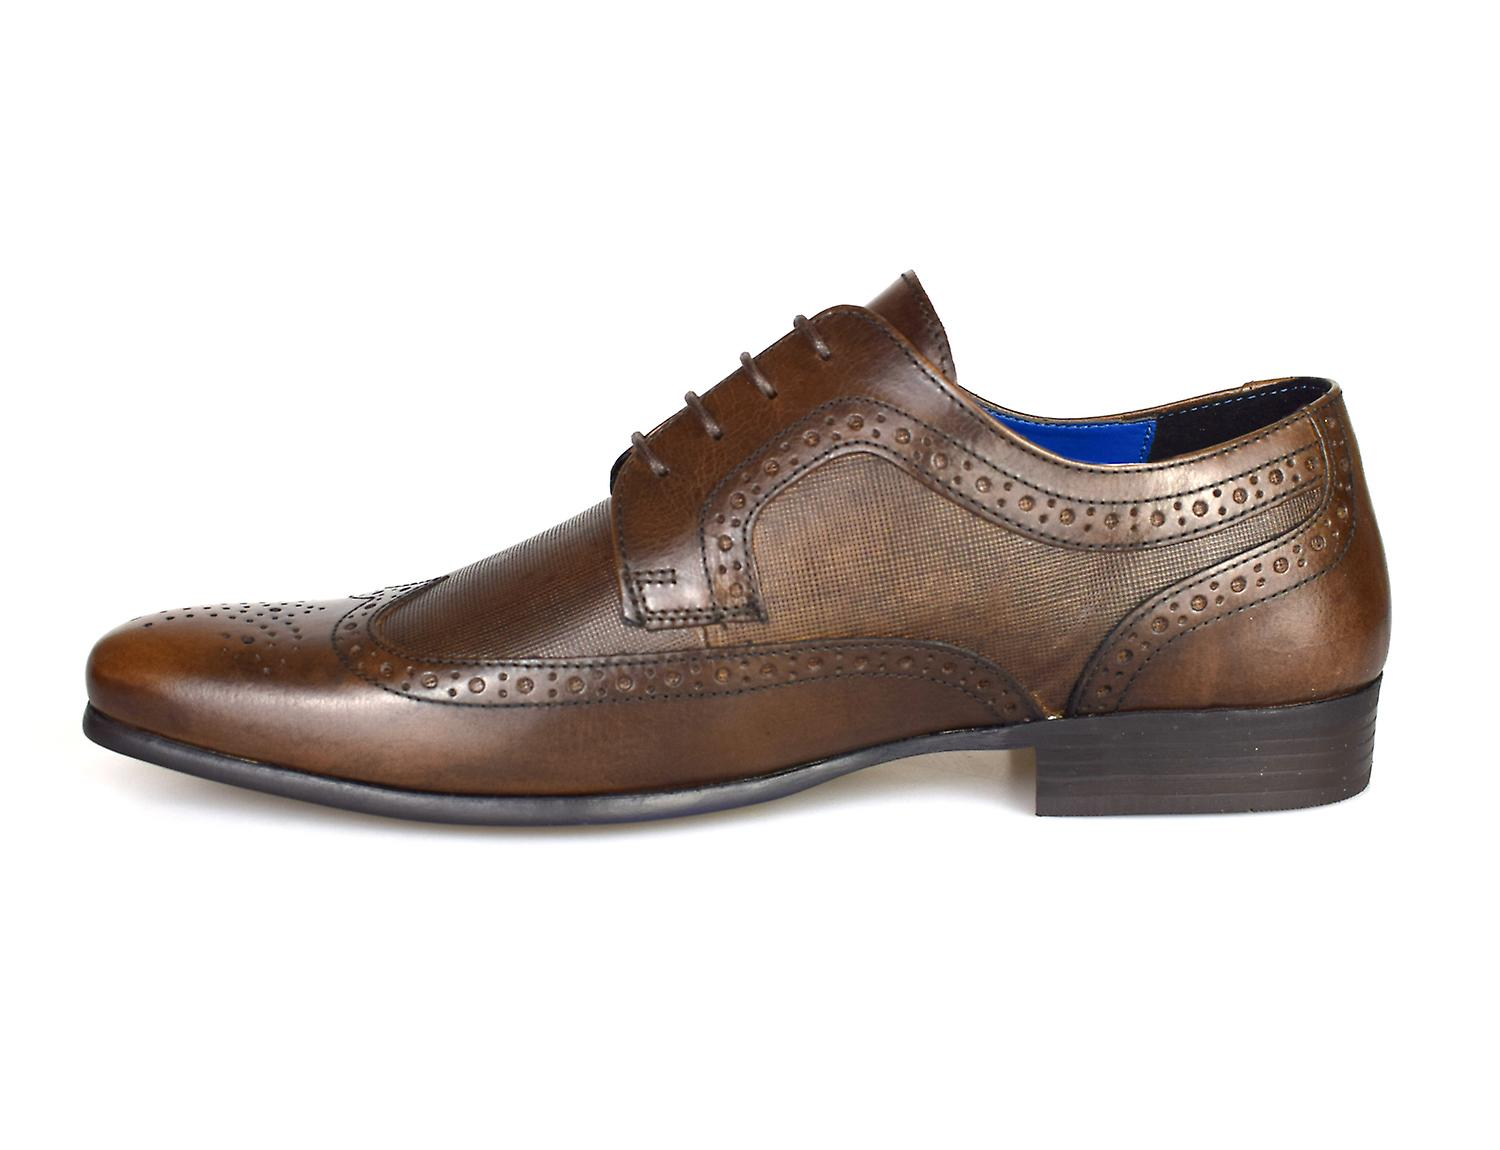 Red Tape Vincent Brown Leather Men's Brogue Dress Shoes